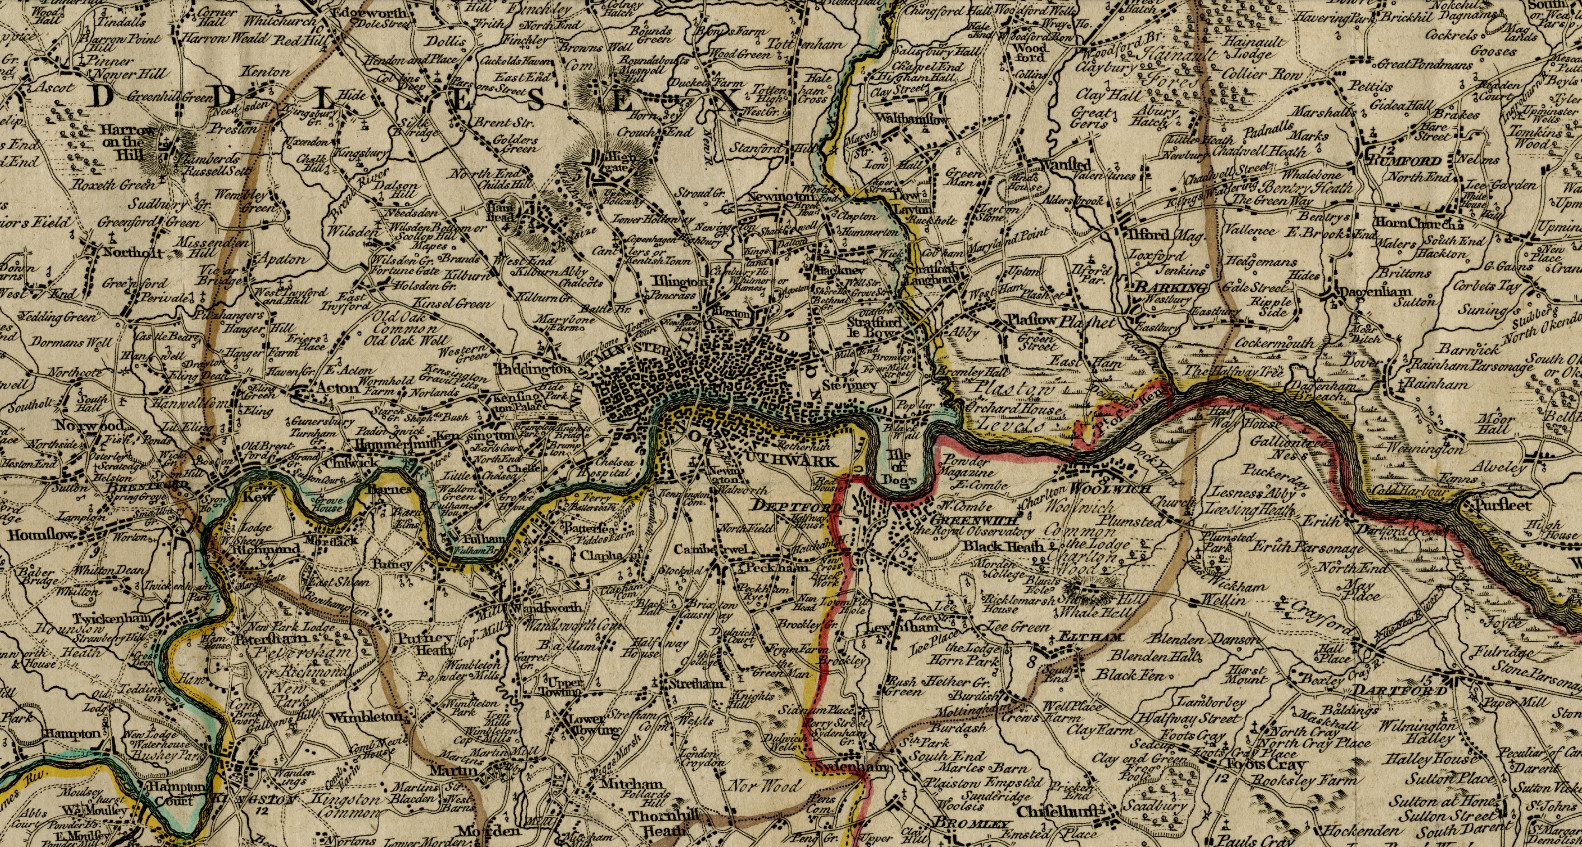 London and environs (1773)